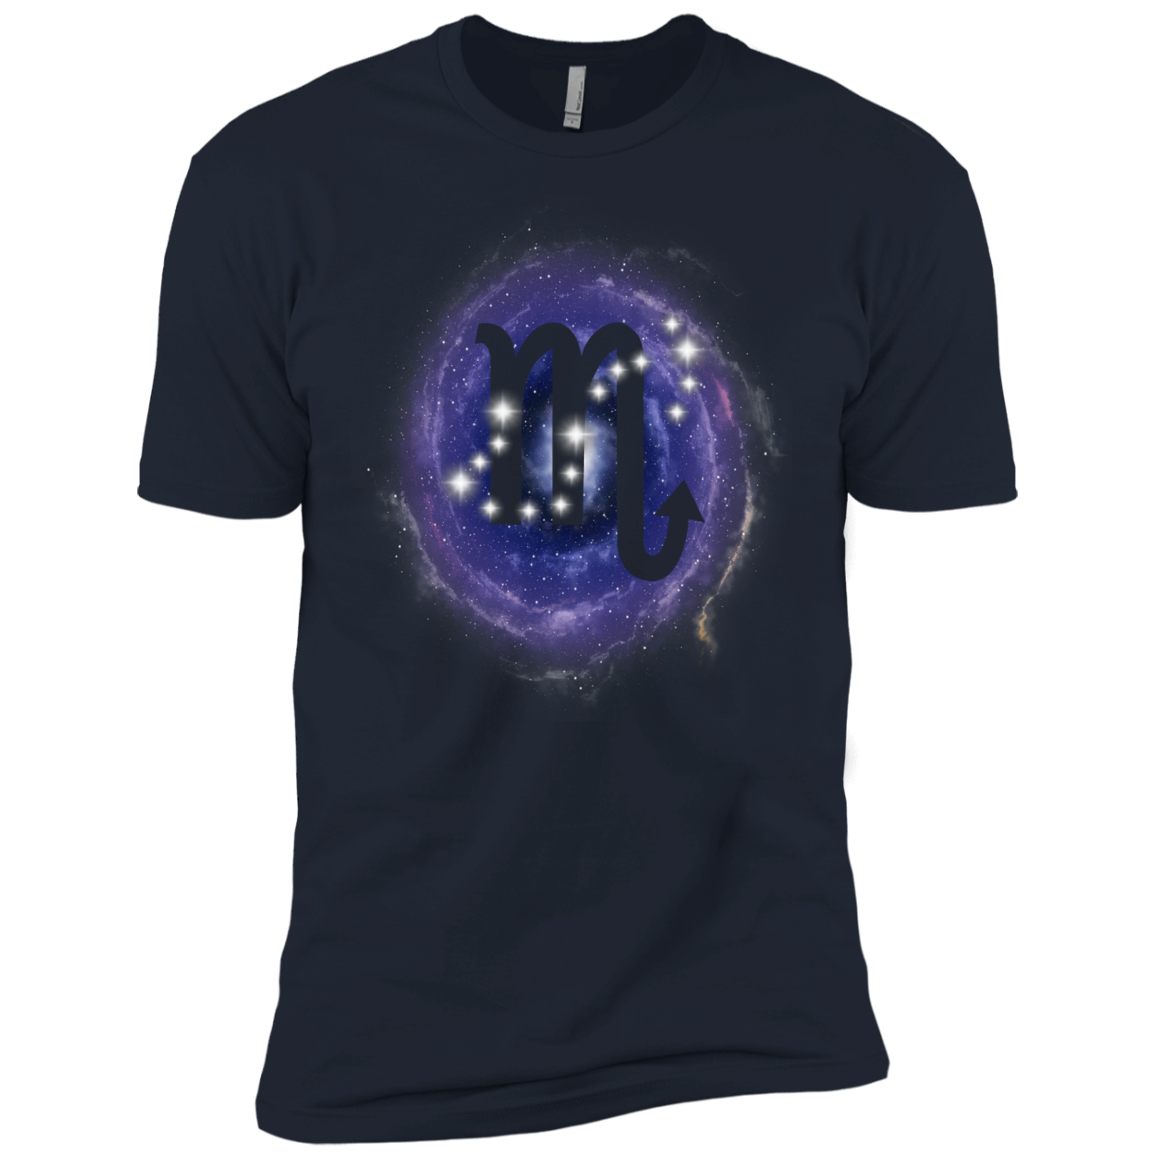 nebula haze in t shirt - photo #22